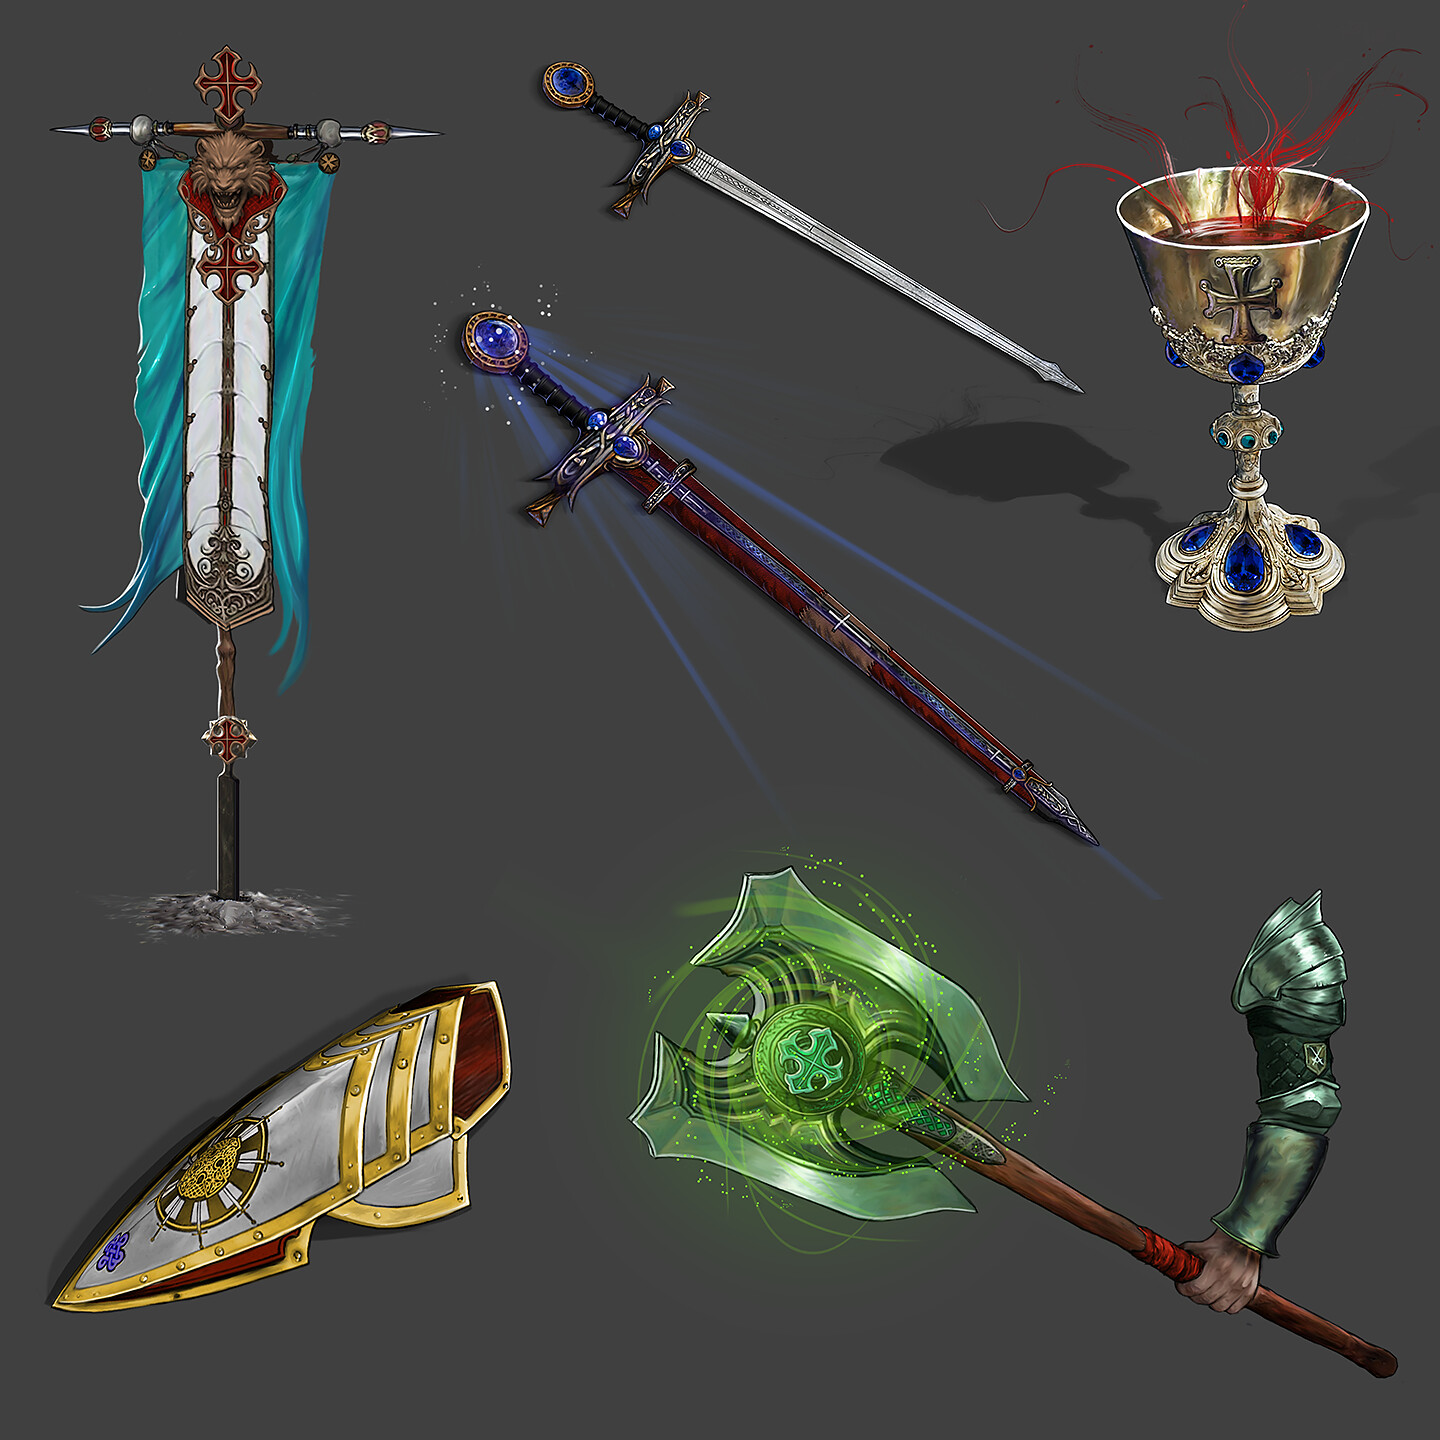 All 5 props rendered